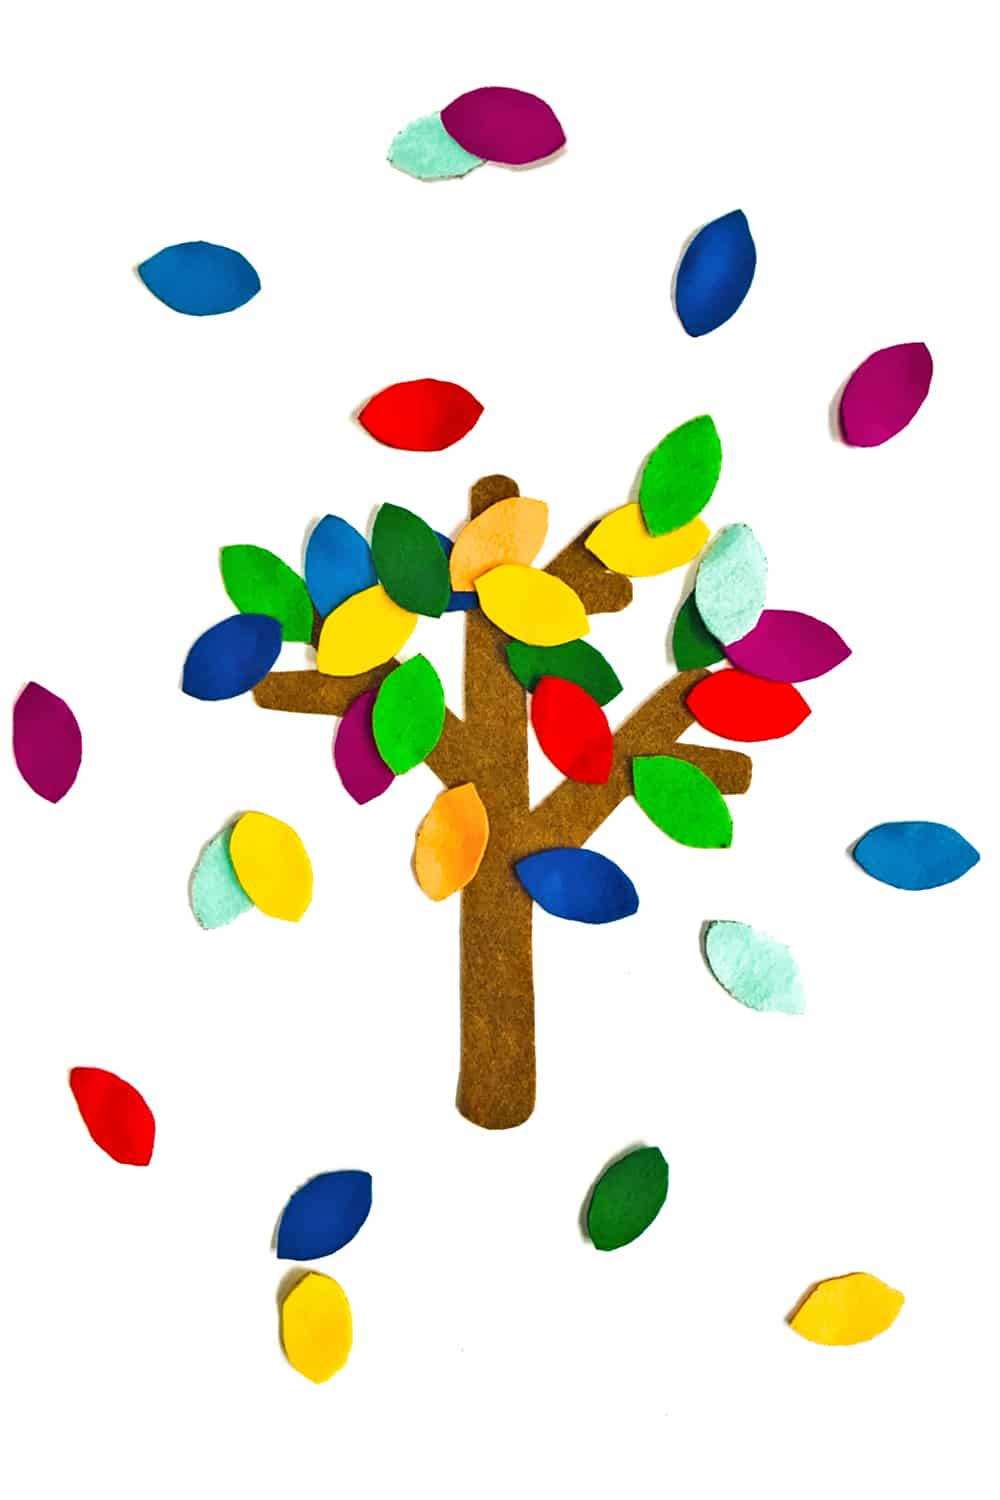 A quick and colorful DIY felt tree that can help teach toddlers seasons, counting sorting, colors and more